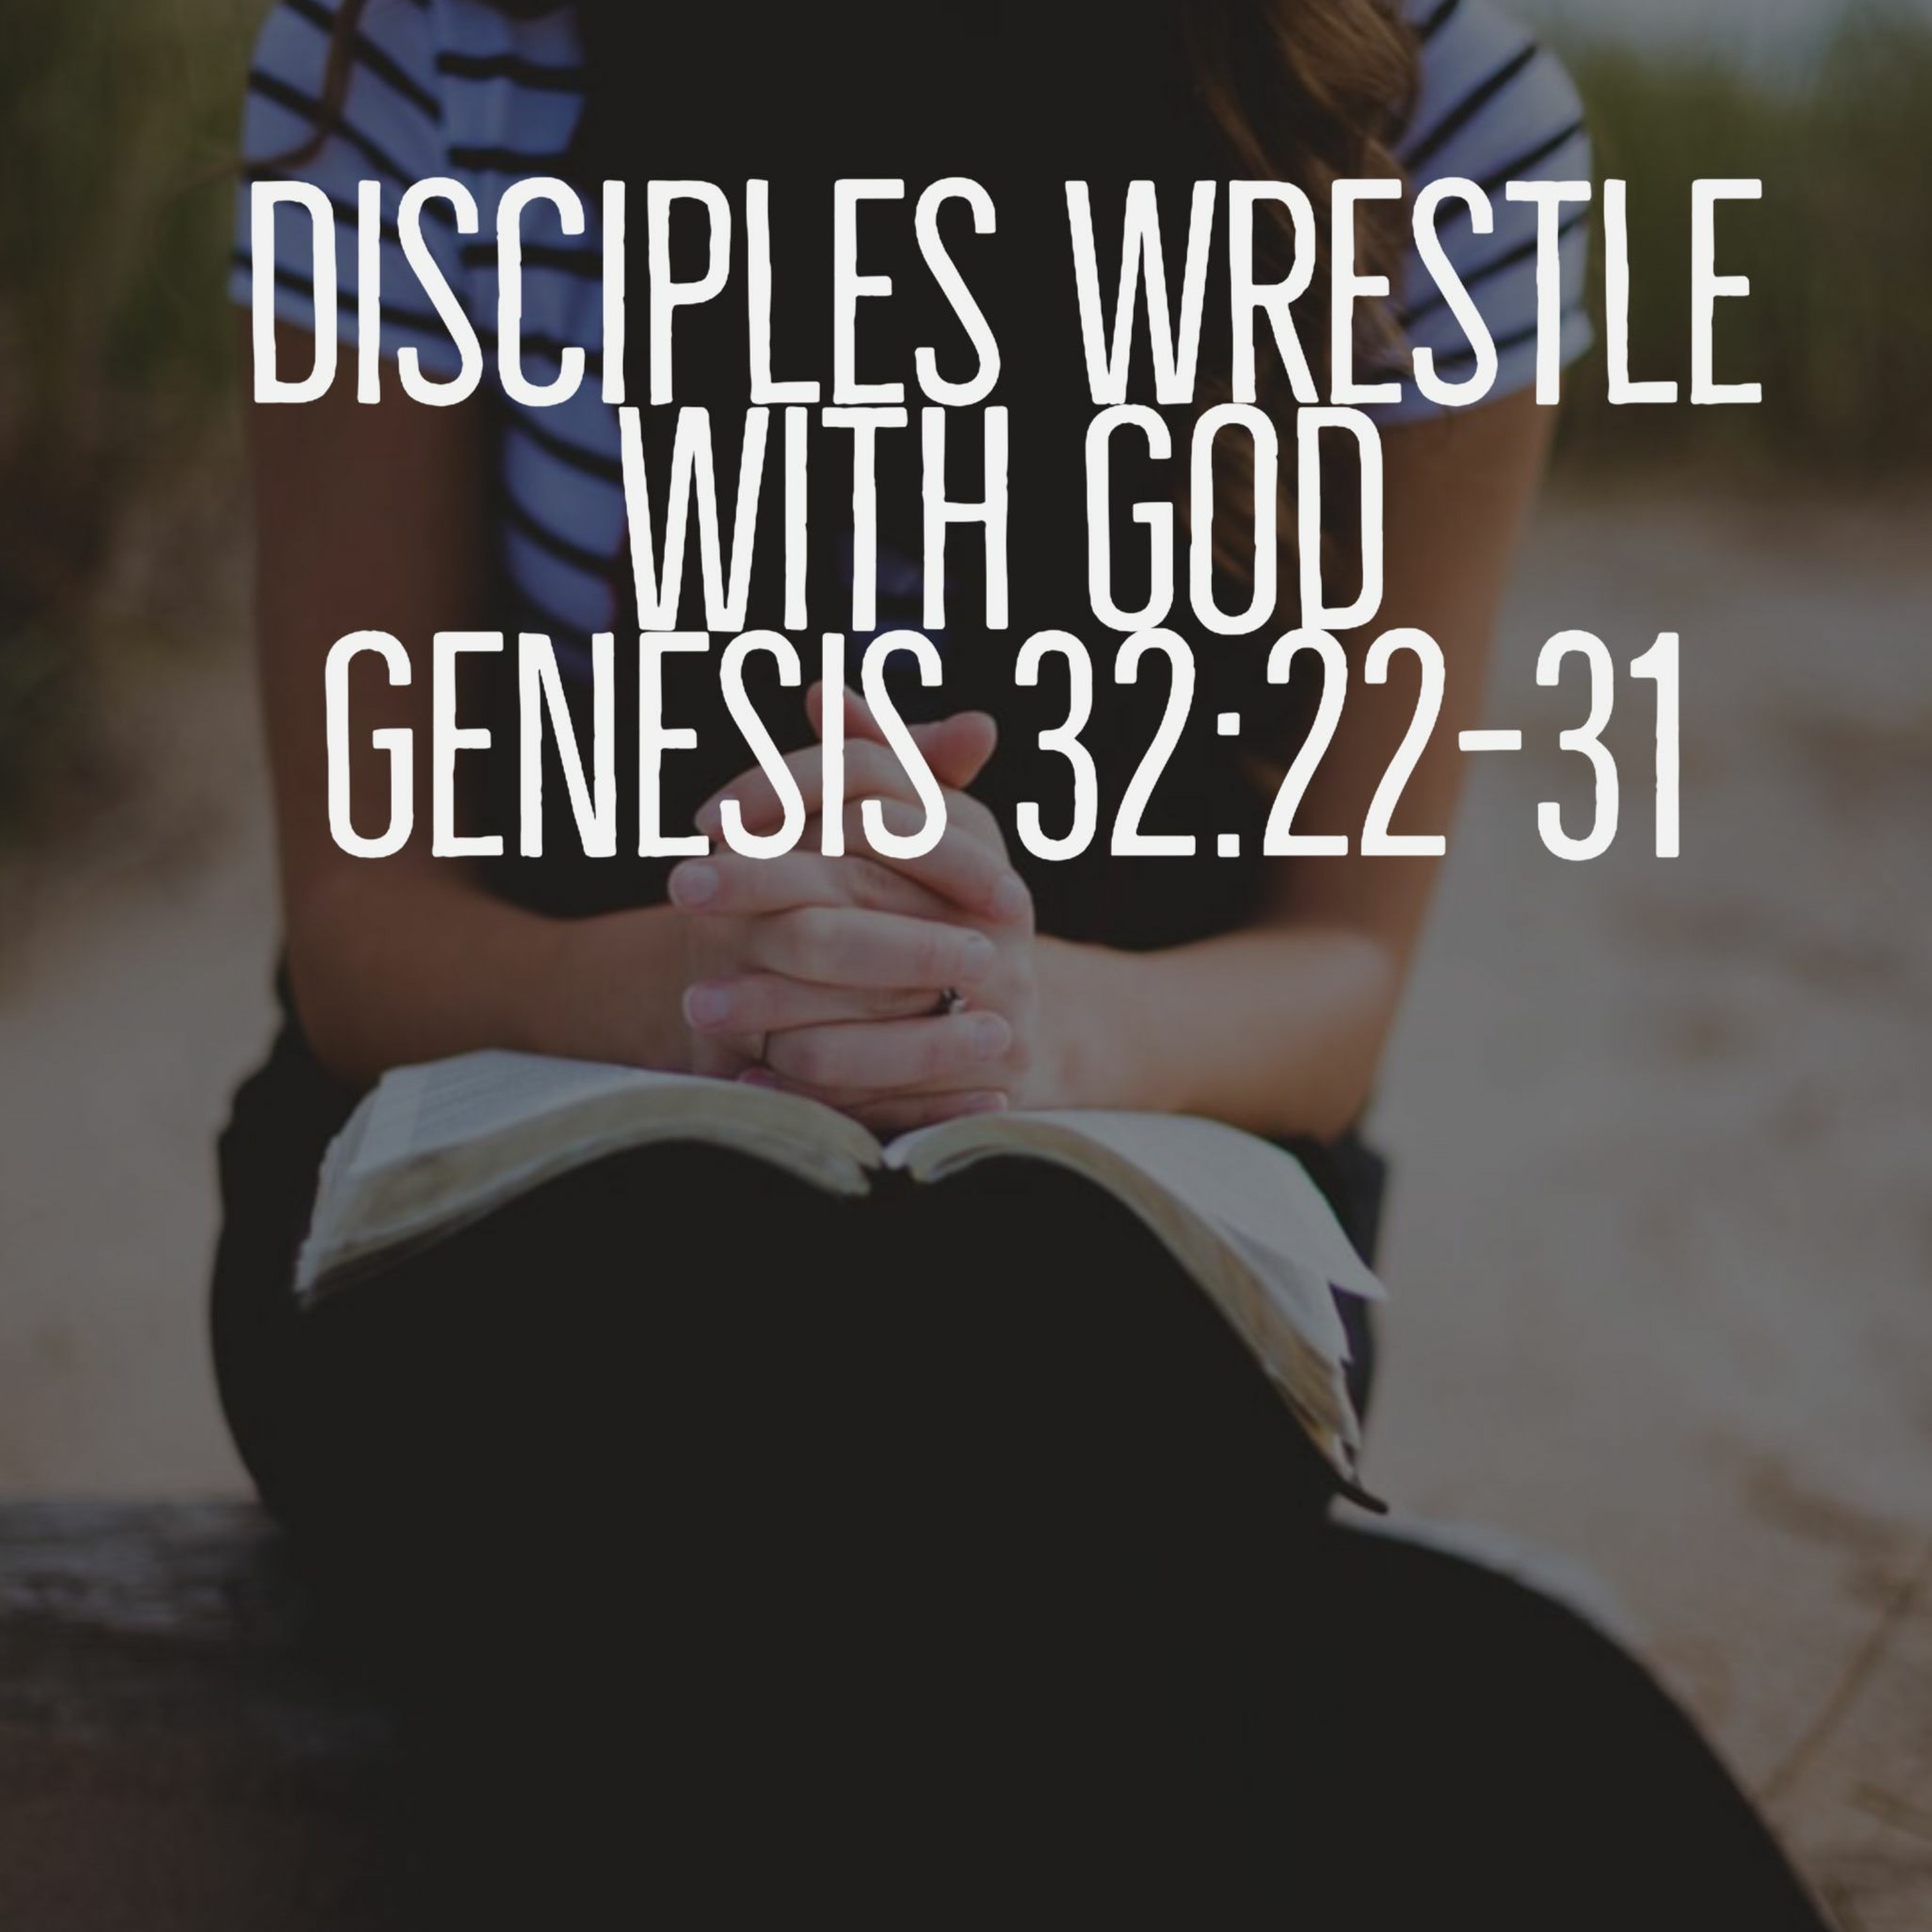 Disciples Wrestle with God